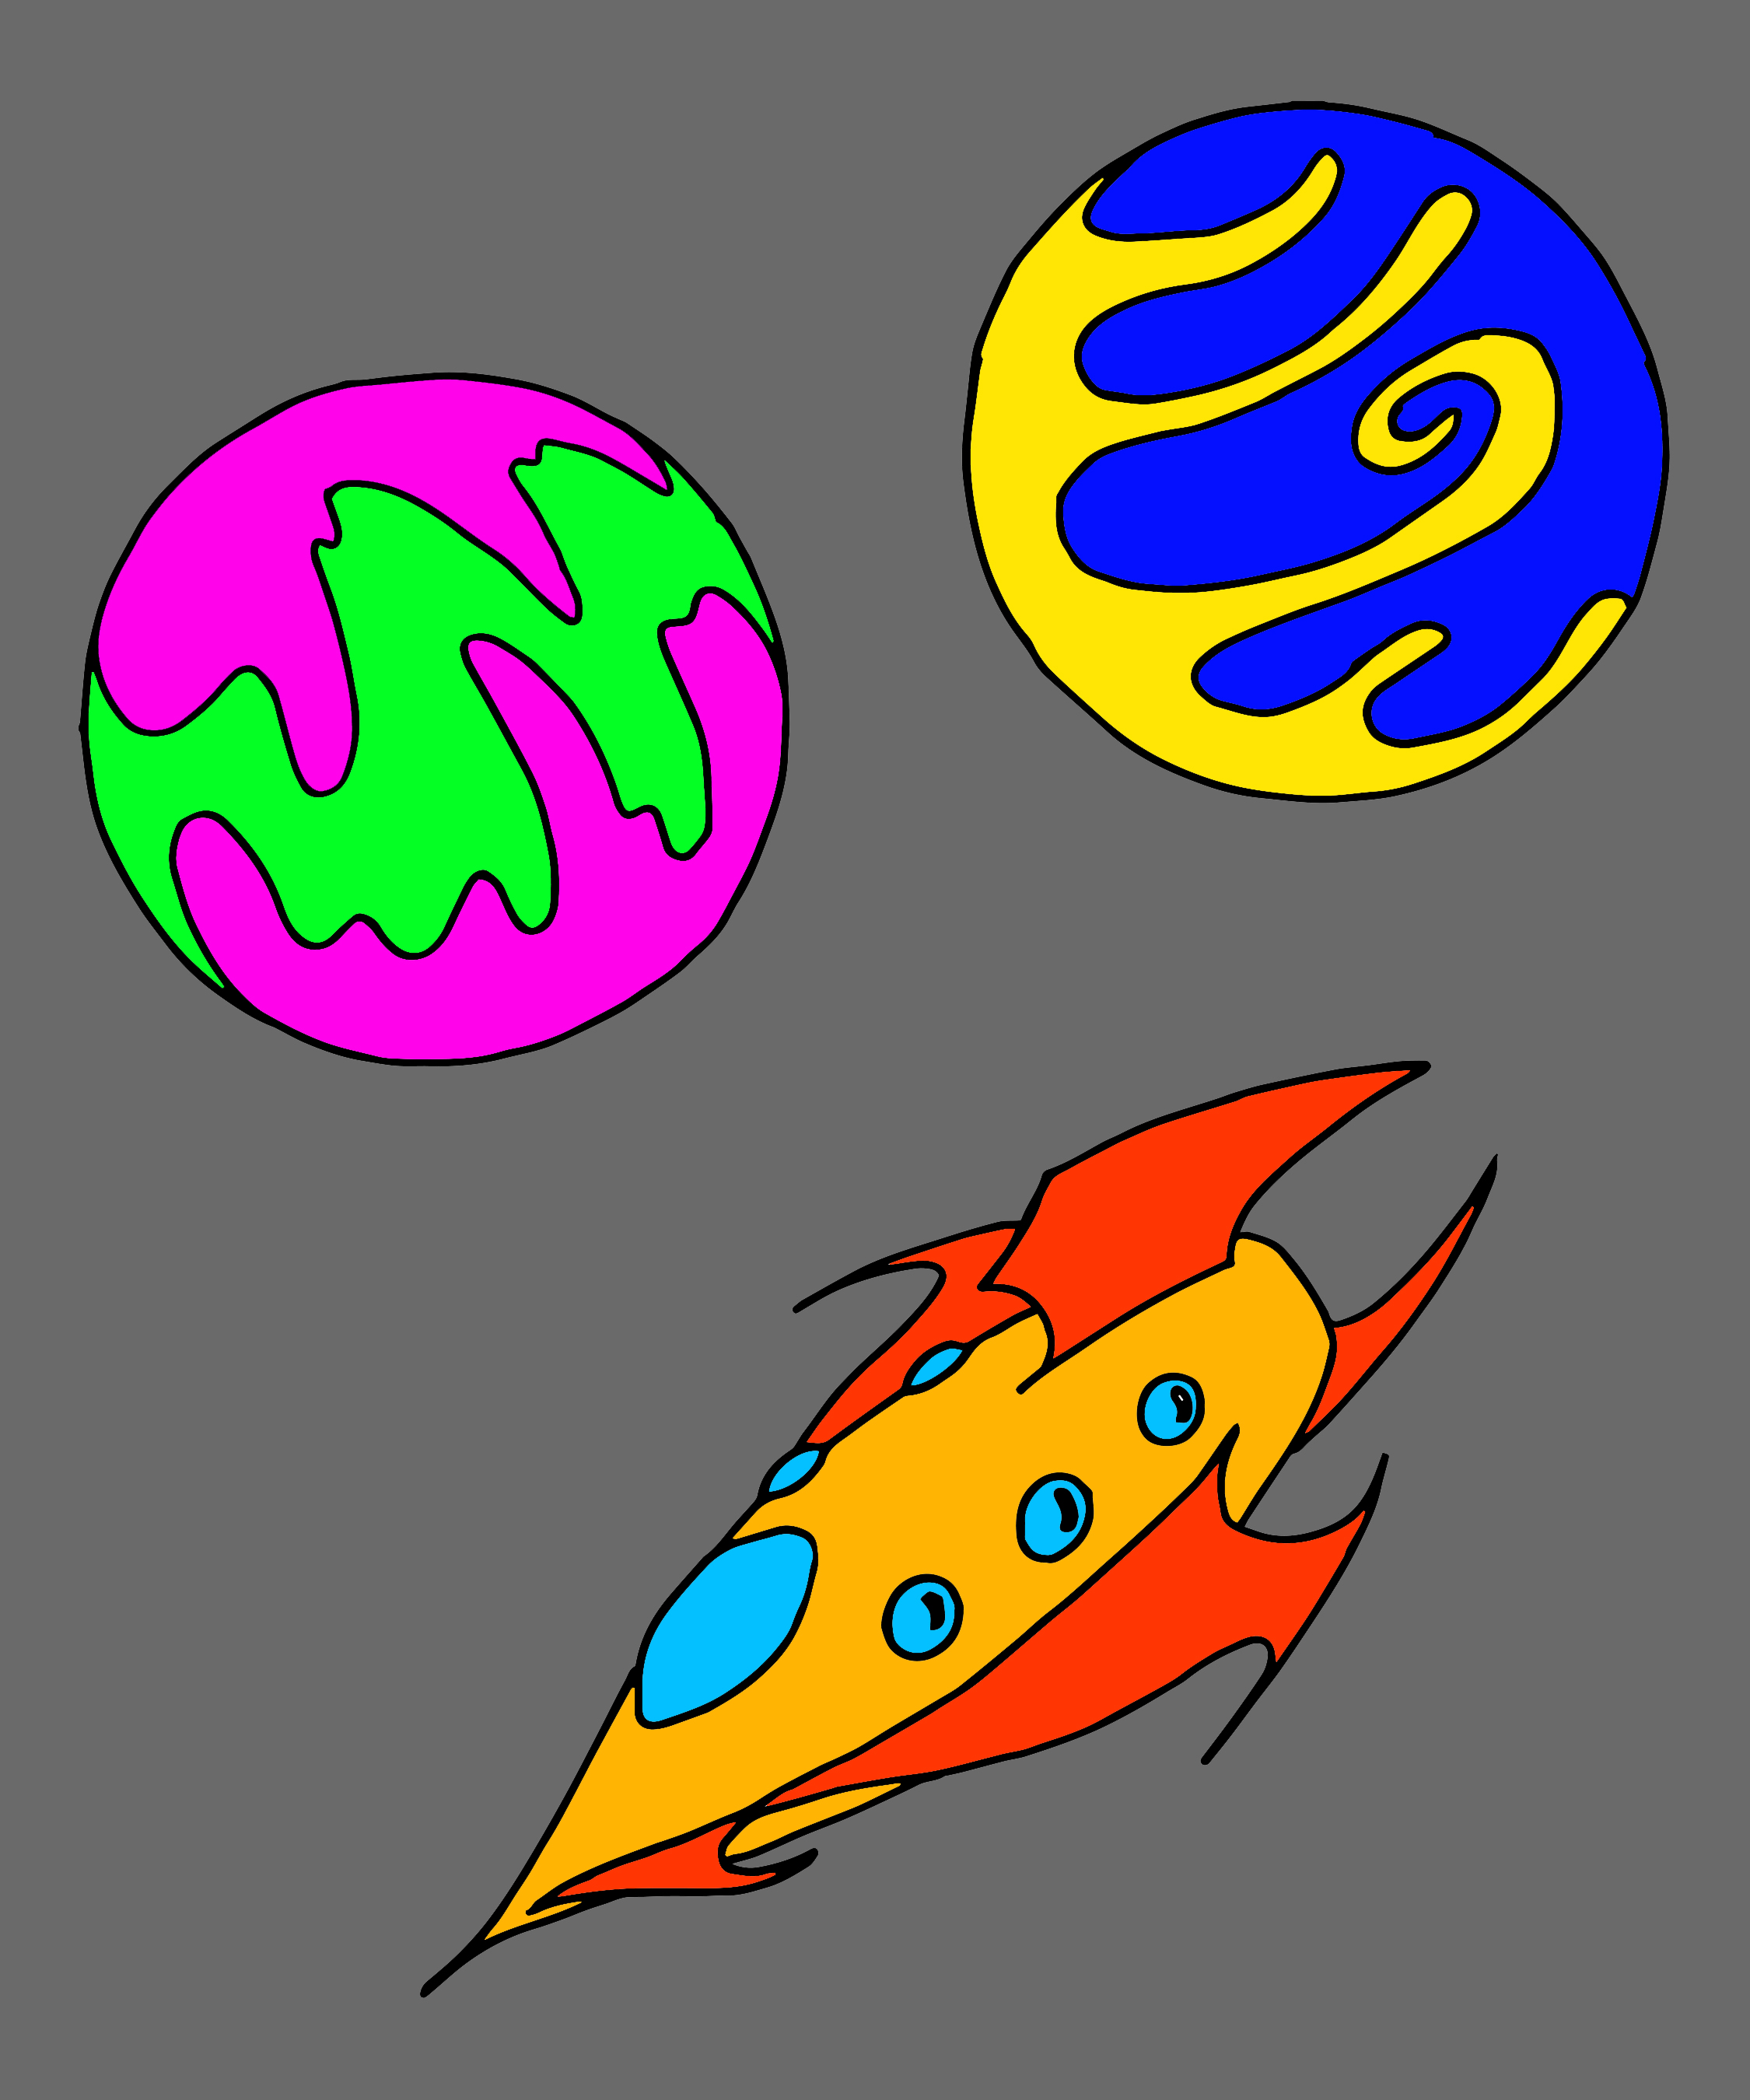 SpaceShip Color 1.jpg